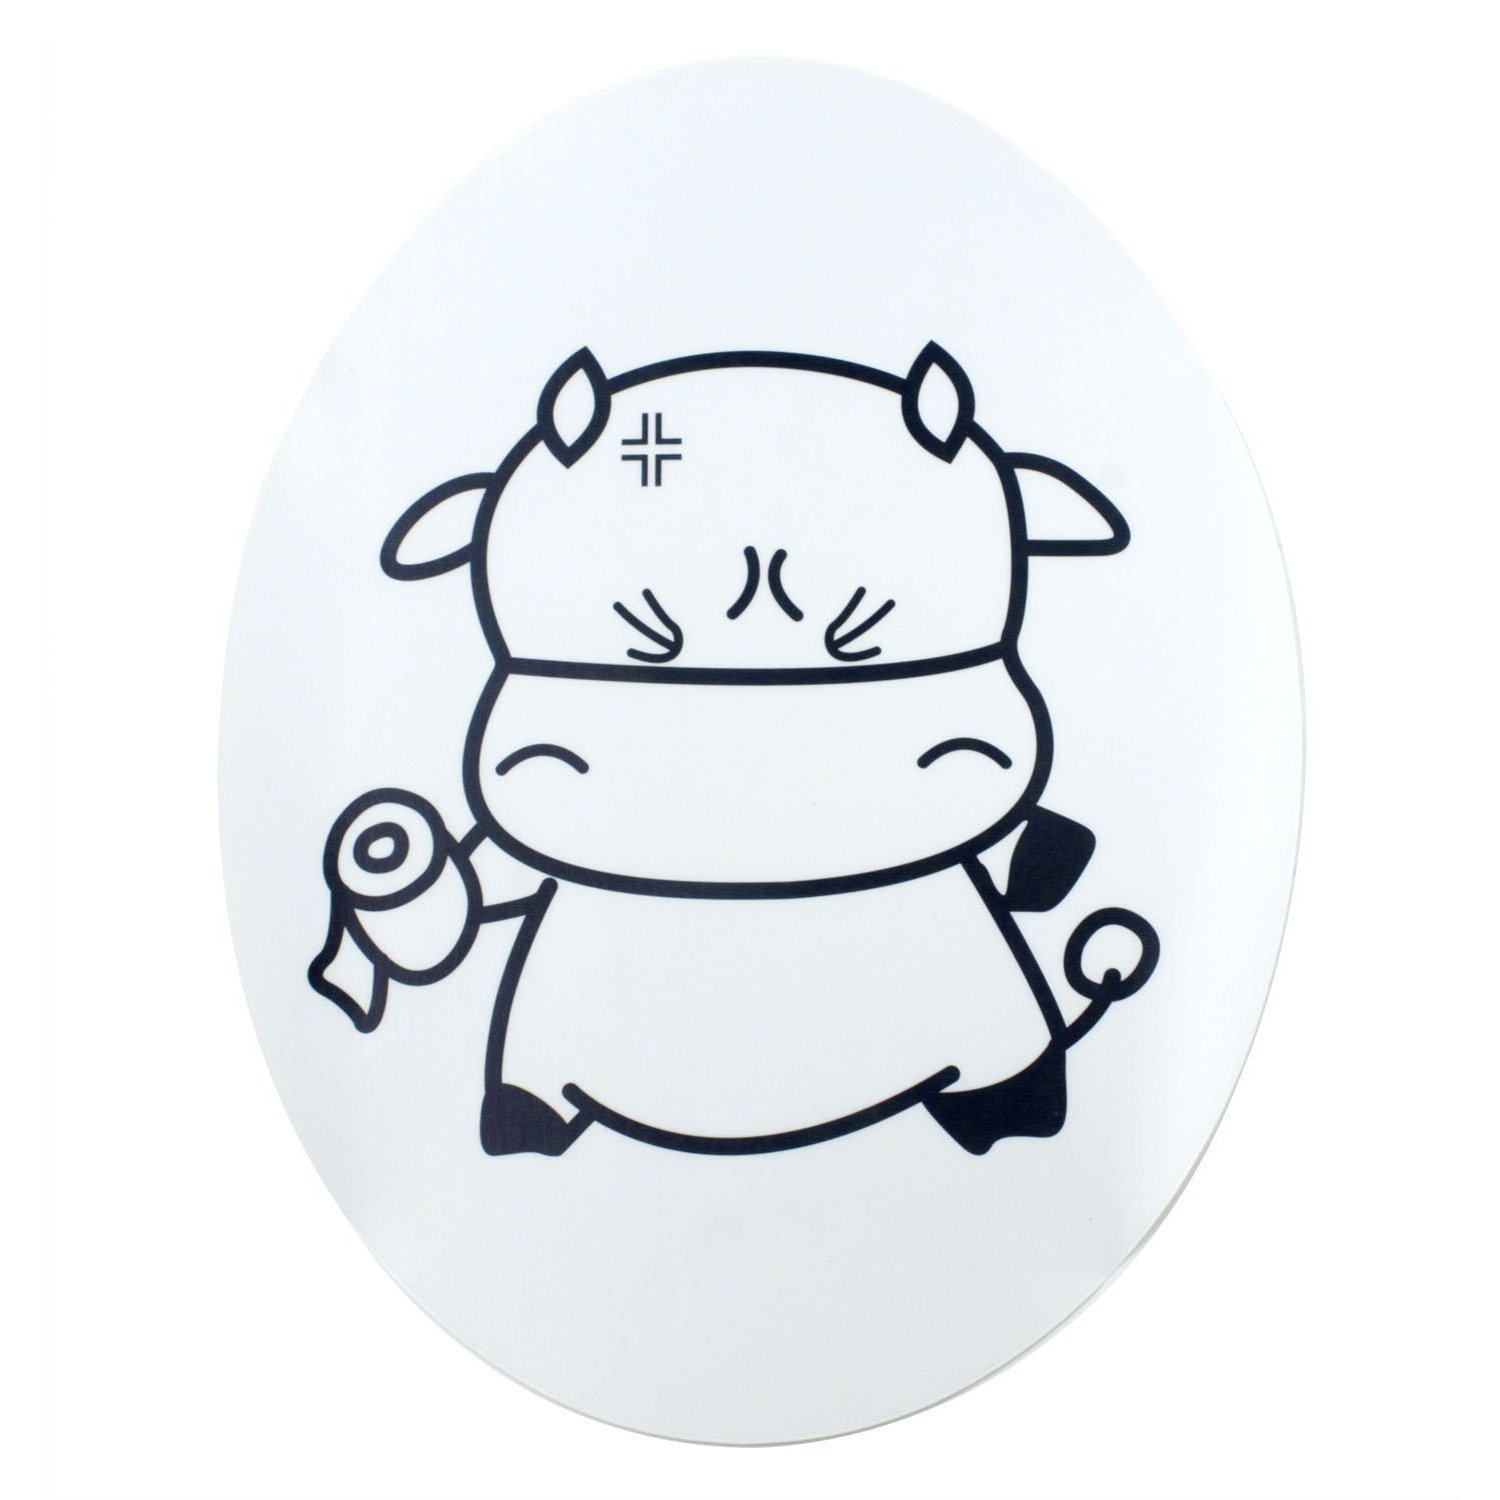 SODIAL(R) Sweet Cow Toilet Seat Cover Decal Sticker TRTA11A